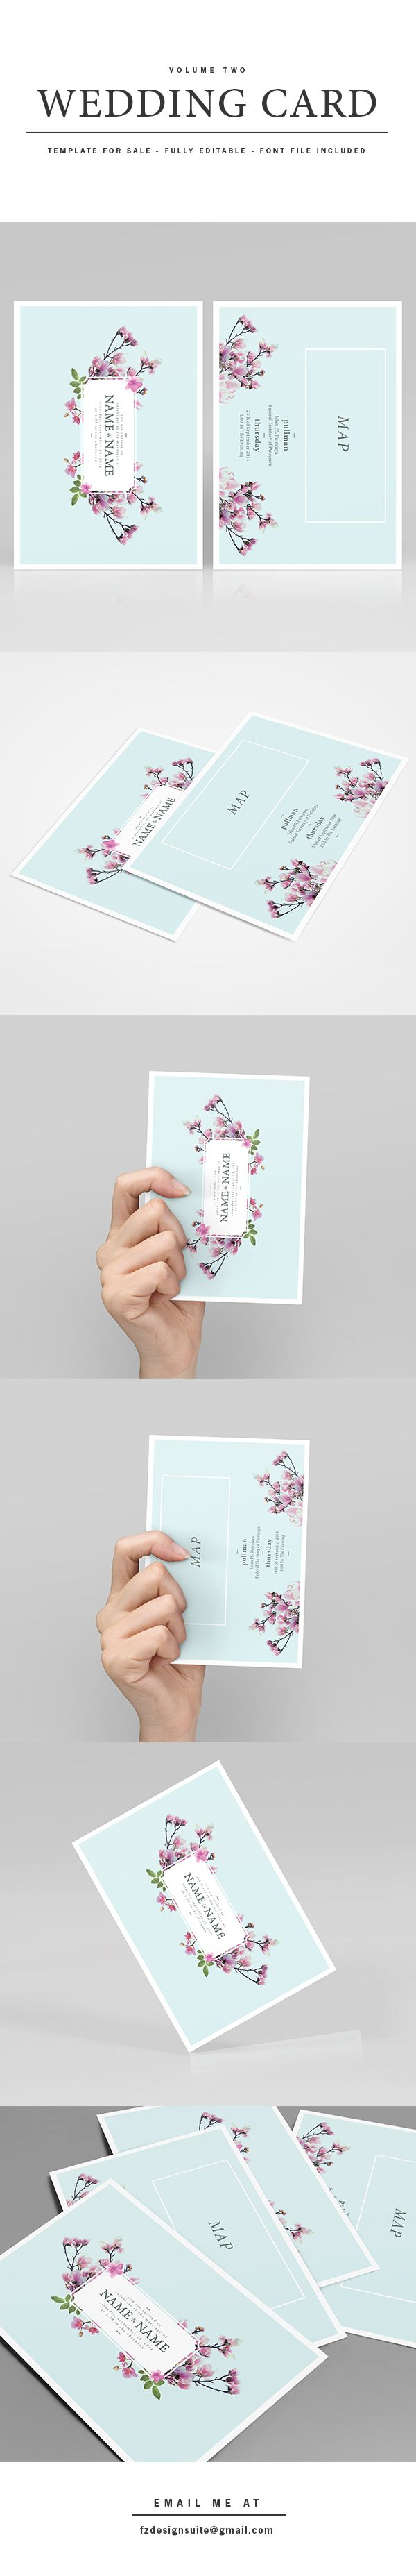 (FOR SALE) Wedding Invitation Template - Volume 2 on Behance